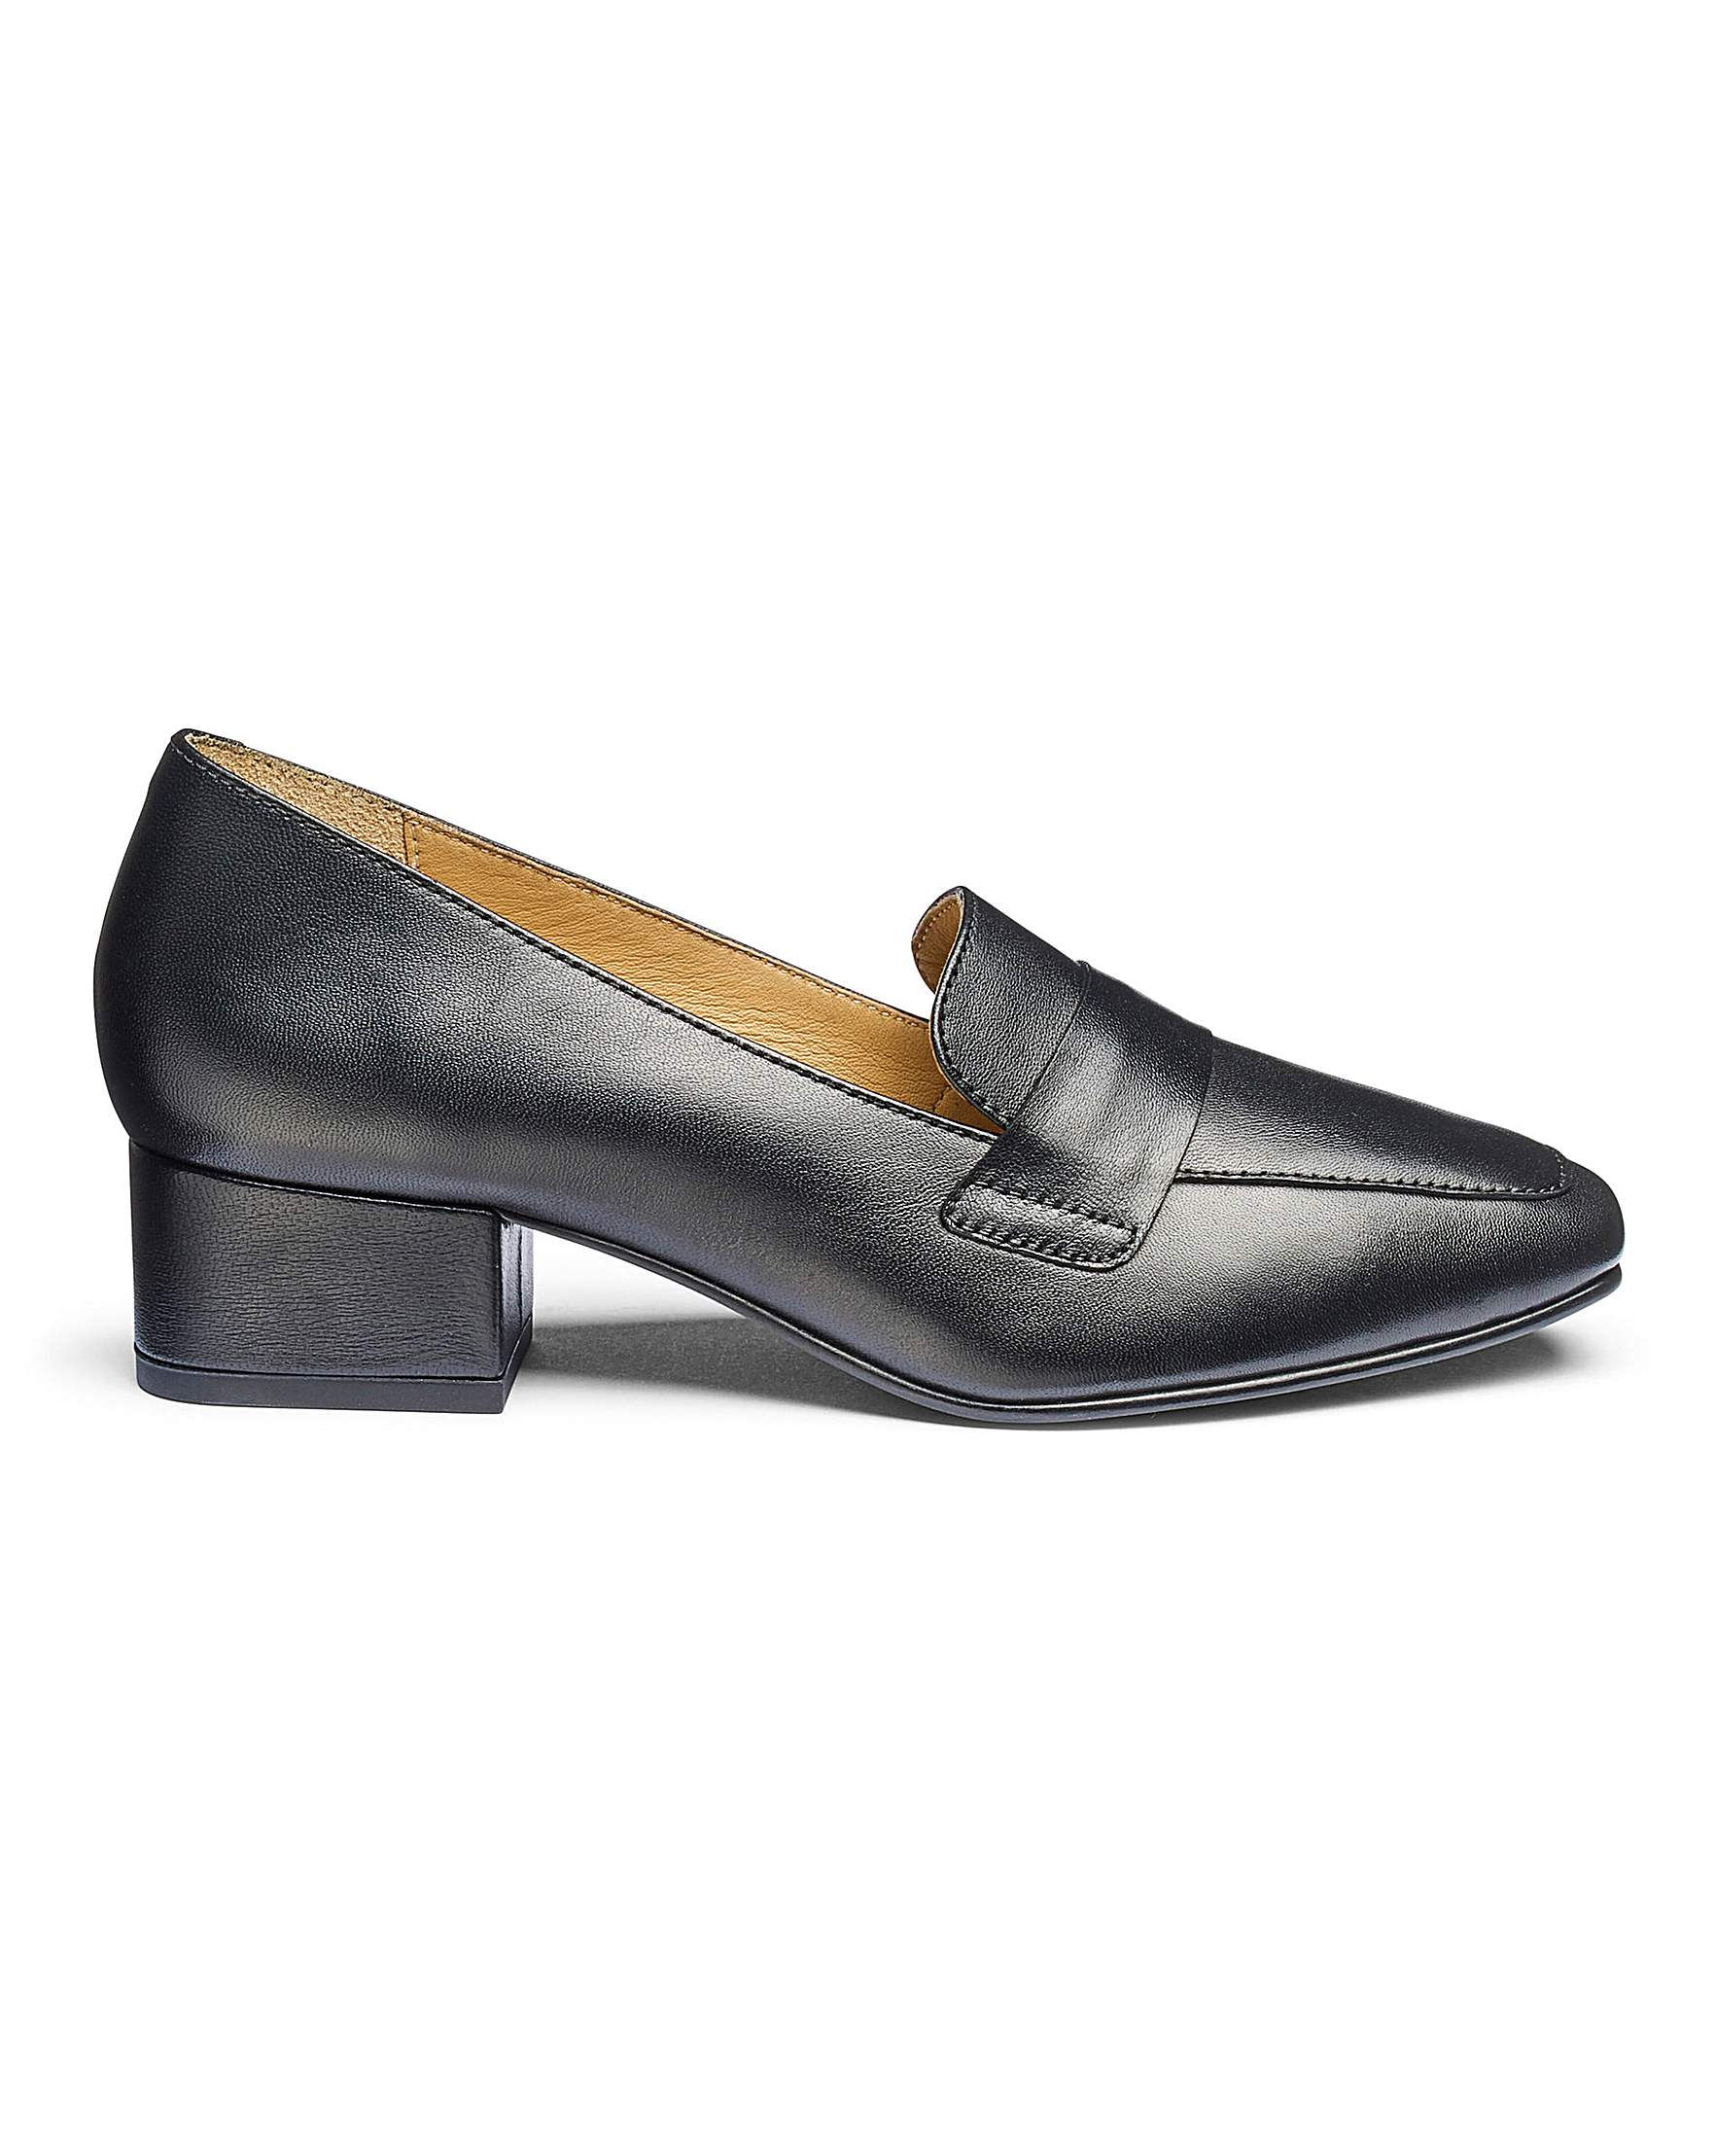 755b4963b449 Leather Block Heel Loafers E Fit | J D Williams